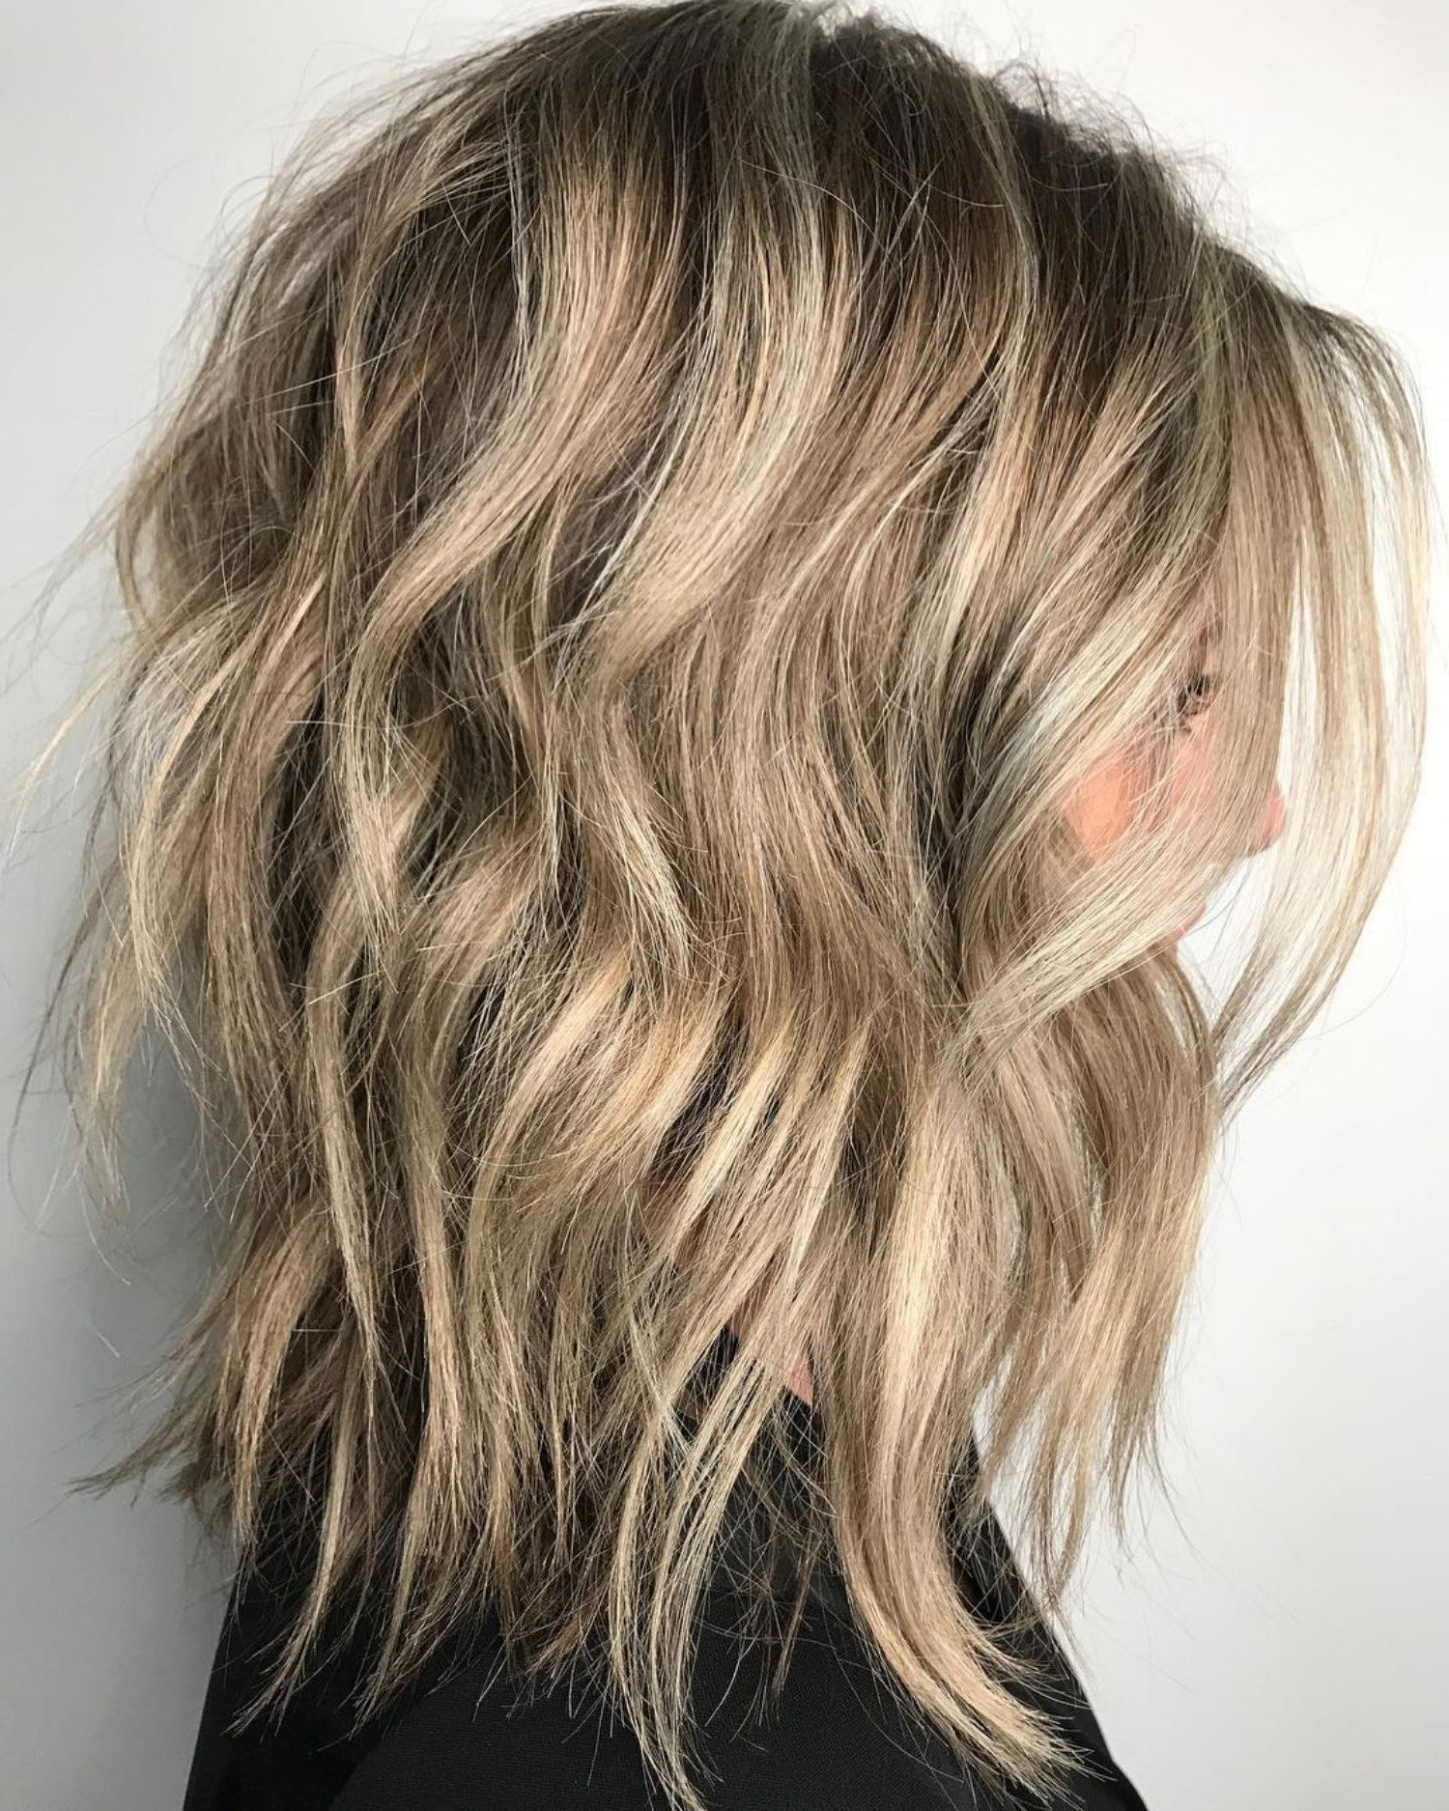 Pin On Beauty: Hair Intended For Trendy Collarbone Bronde Shag Haircuts (View 17 of 20)